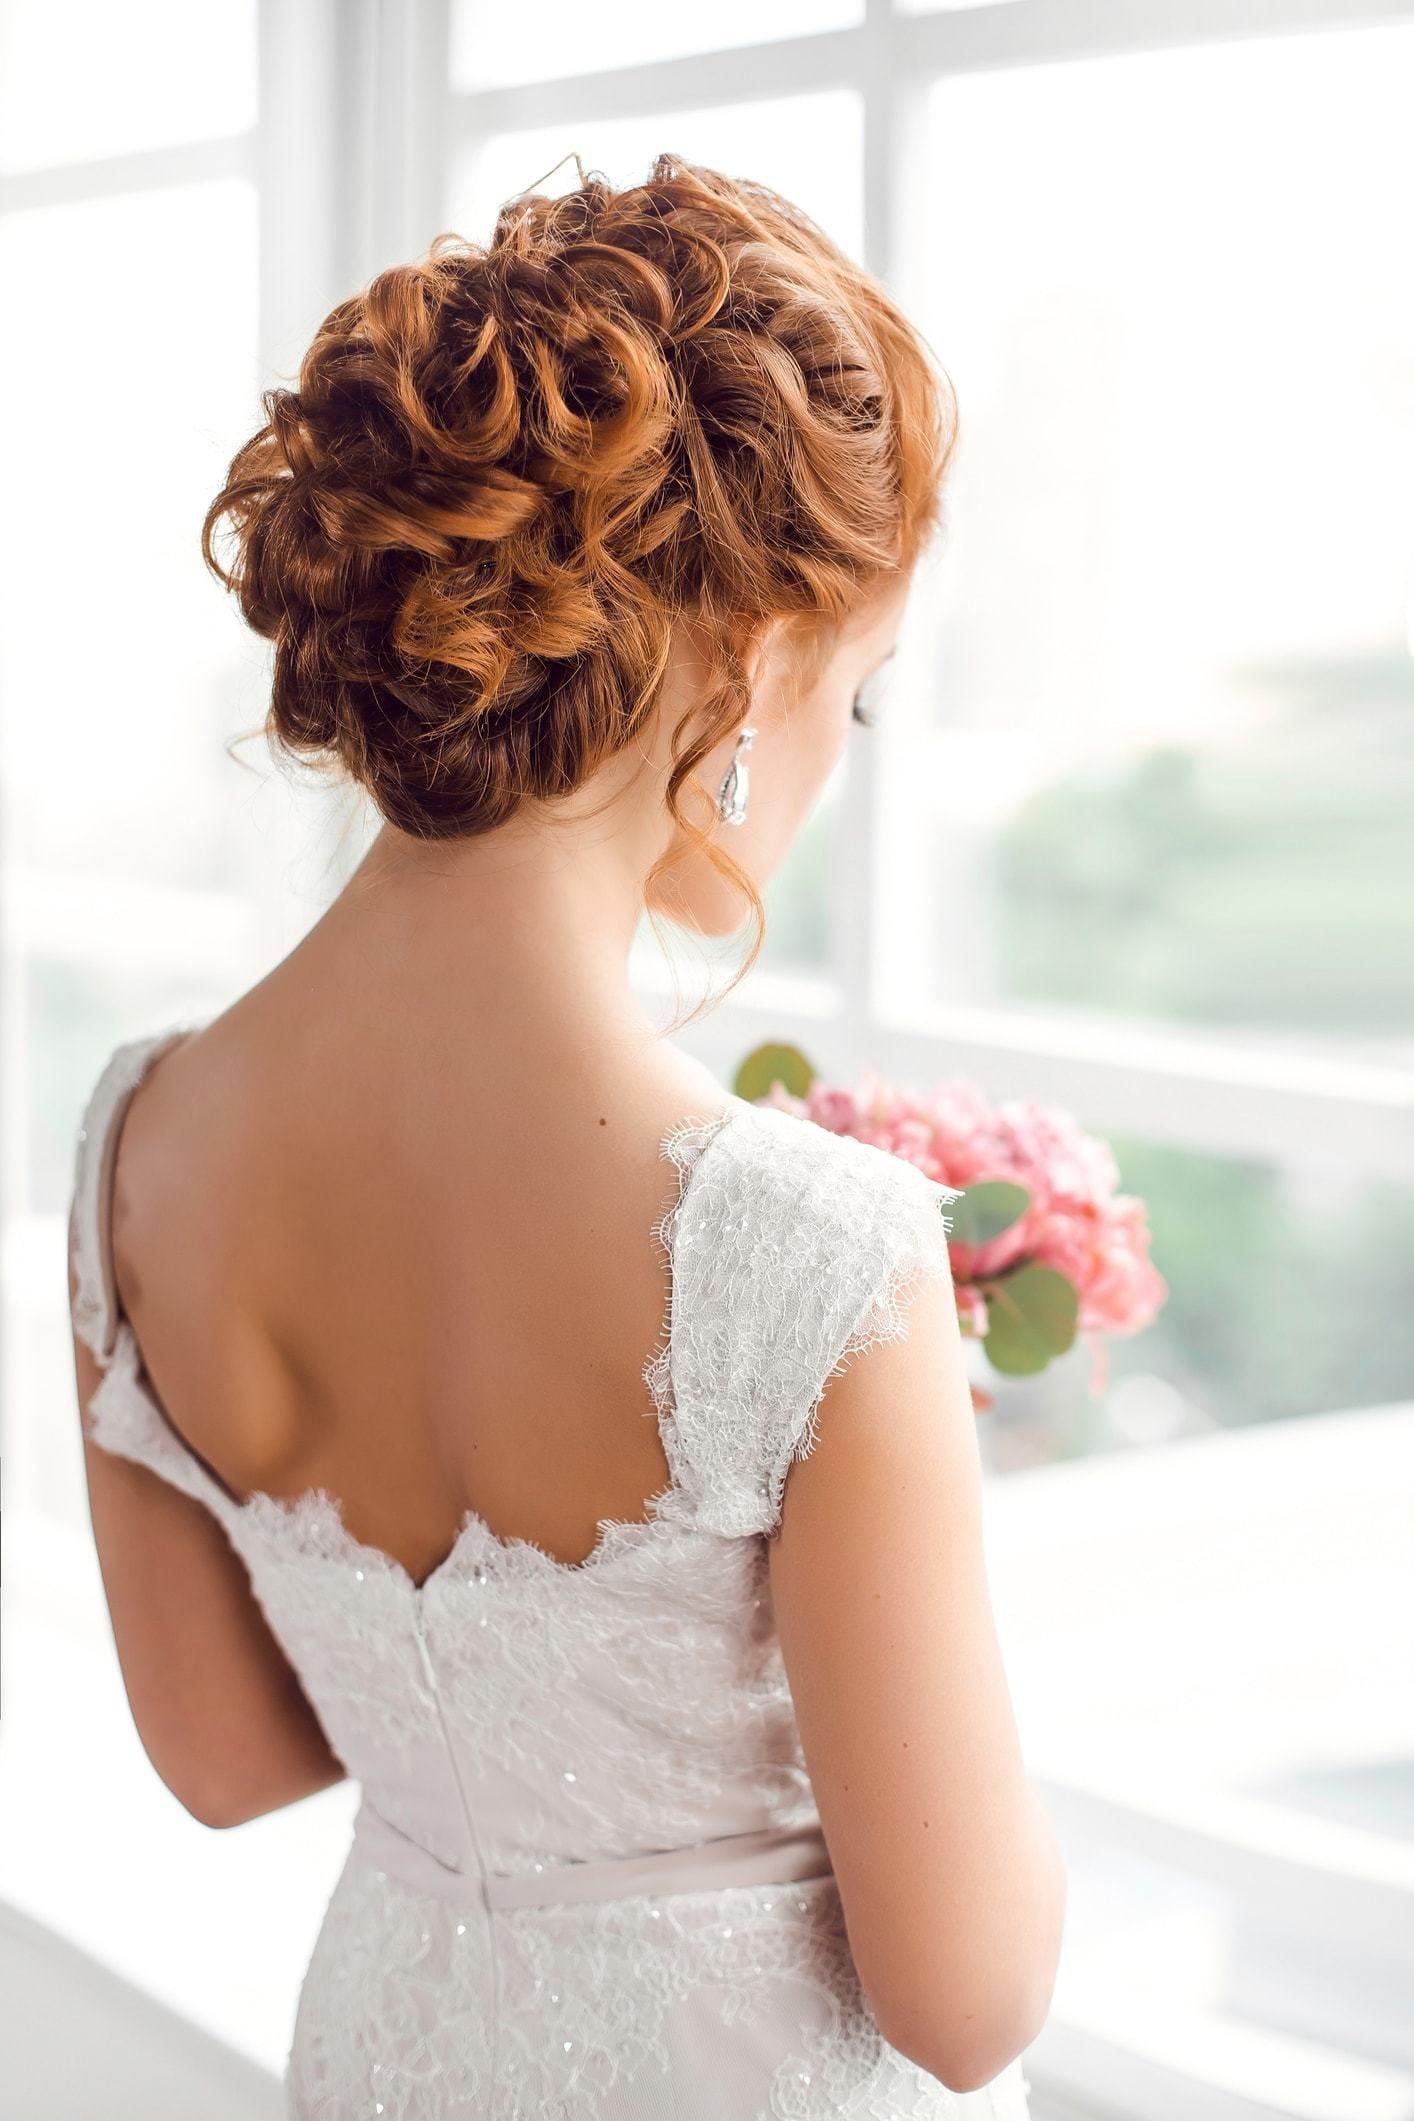 2018 Curly Wedding Day Hair For Amazing Look ! 4